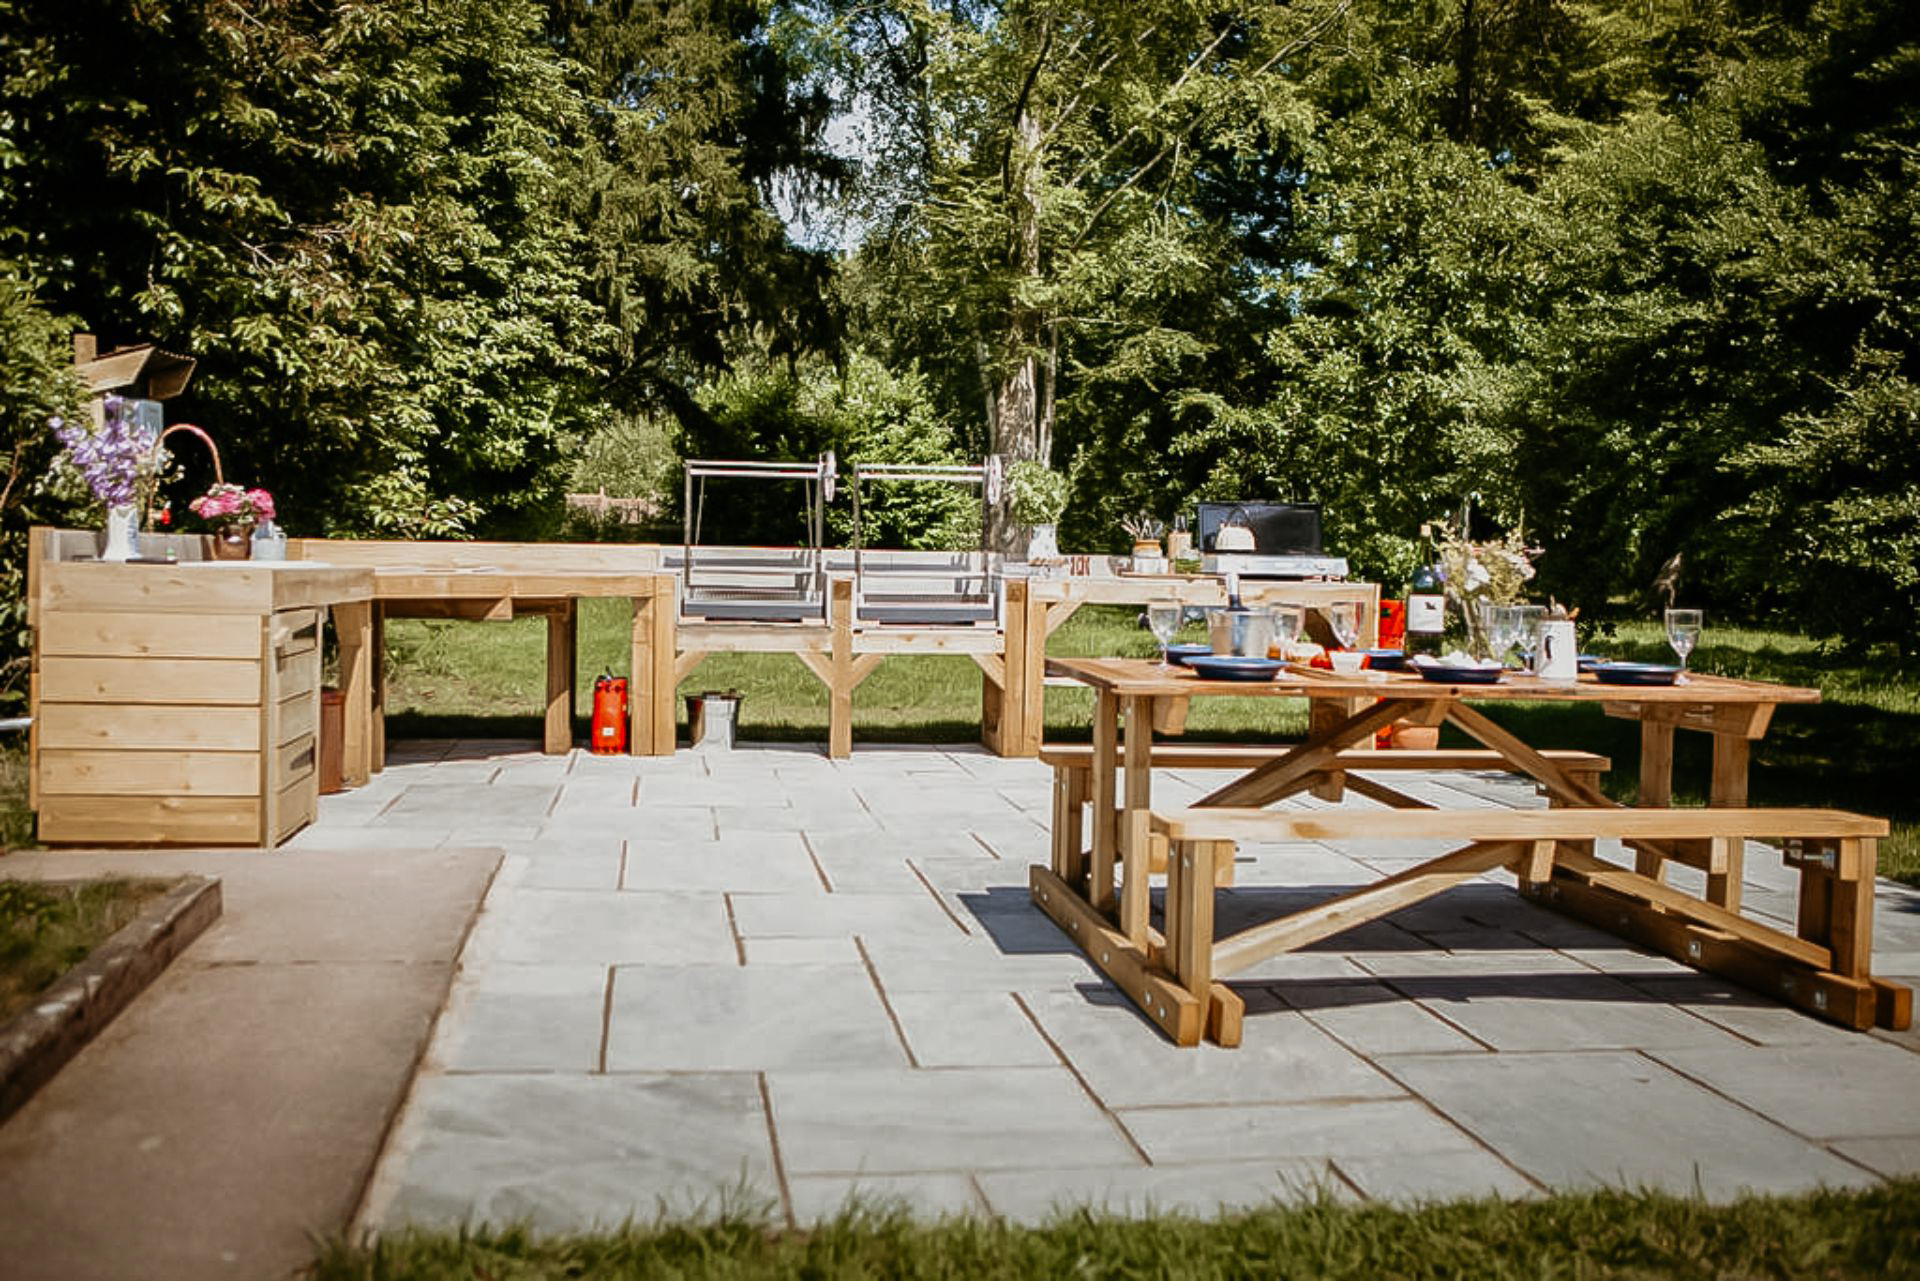 outdoor-communal-kitchen-area-with-picnic-table-and-benches-in-garden